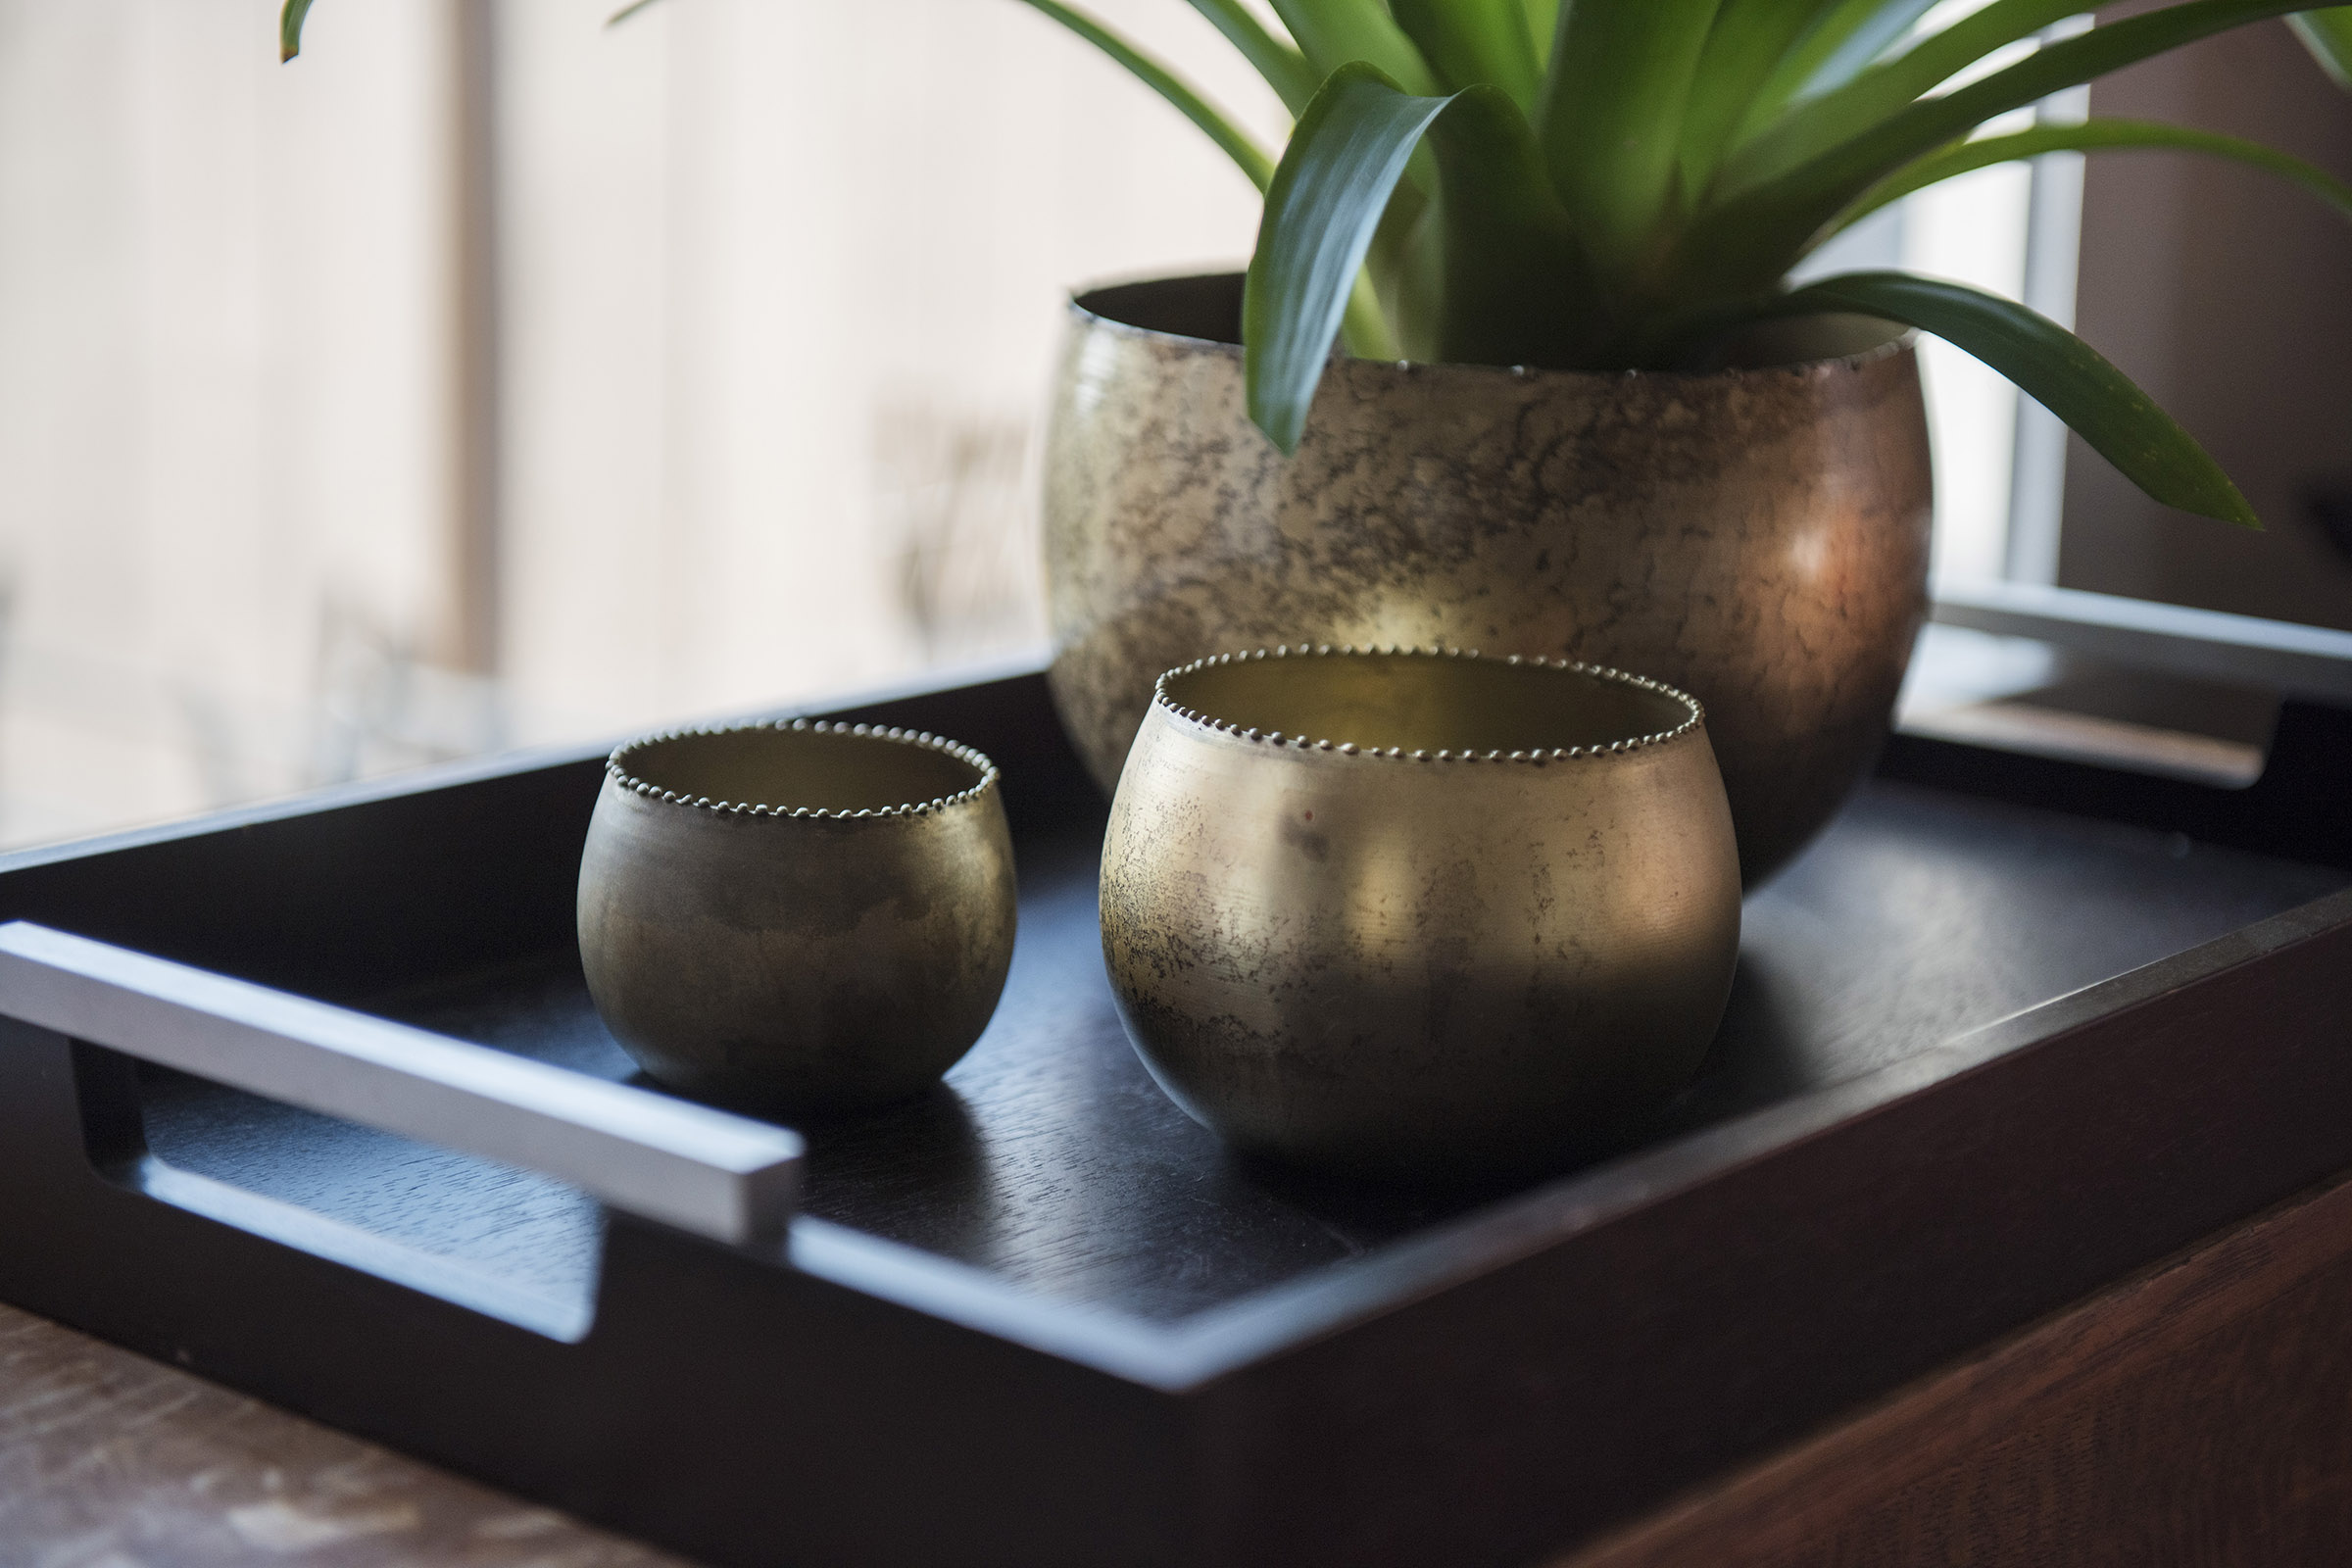 interiors-sherry-plant-pots